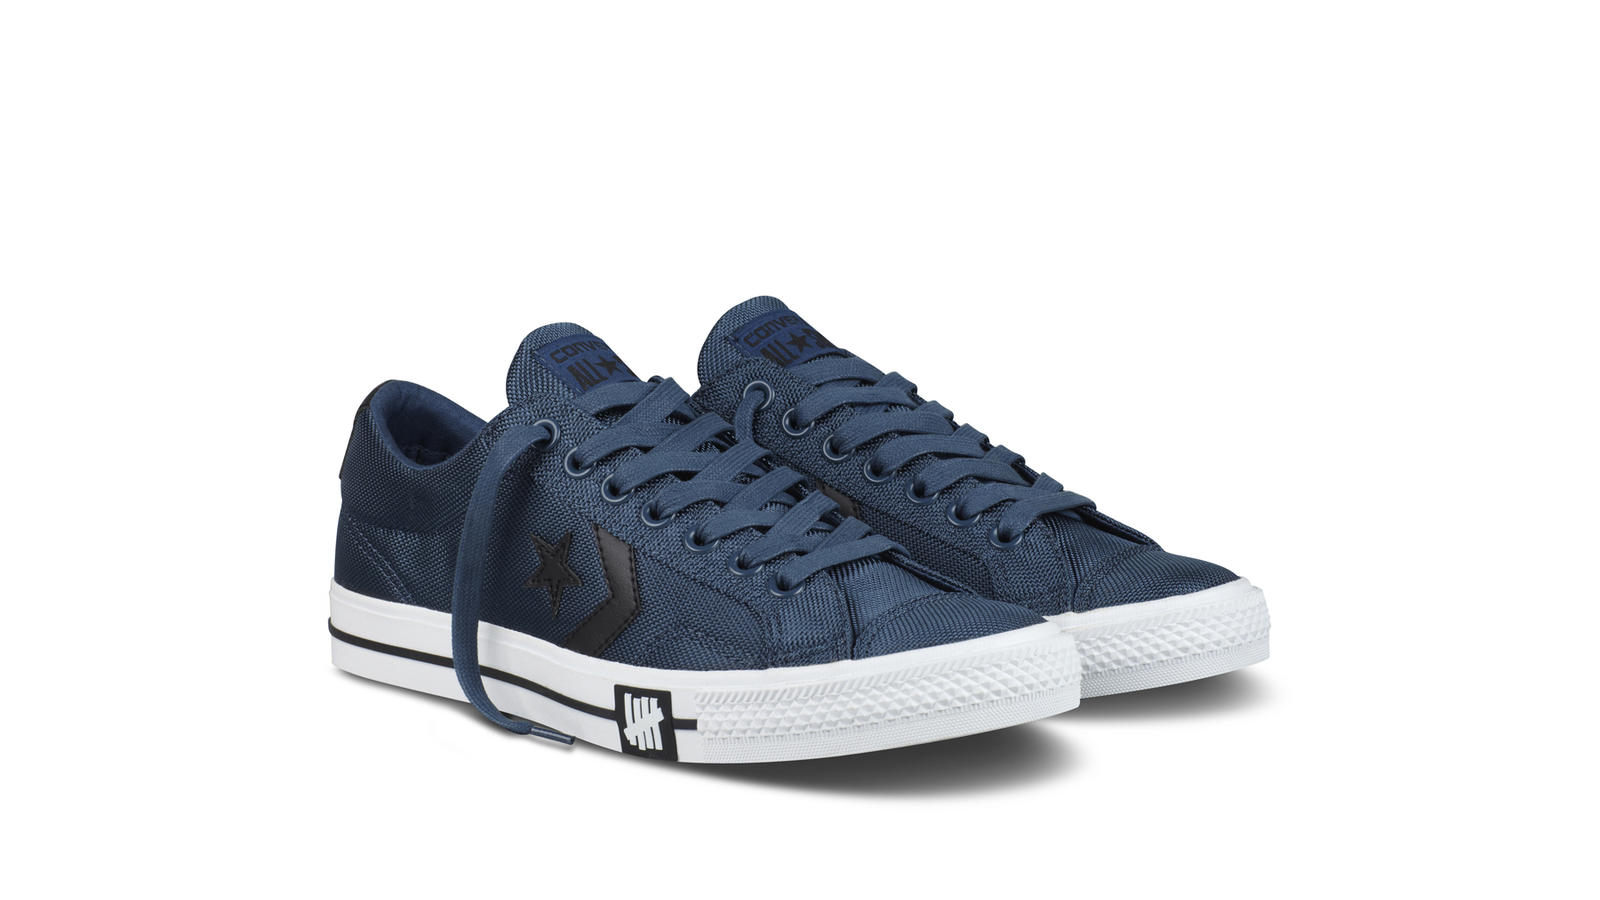 93e877ba024c Converse and Undefeated launch collection to be sold at Foot Locker ...